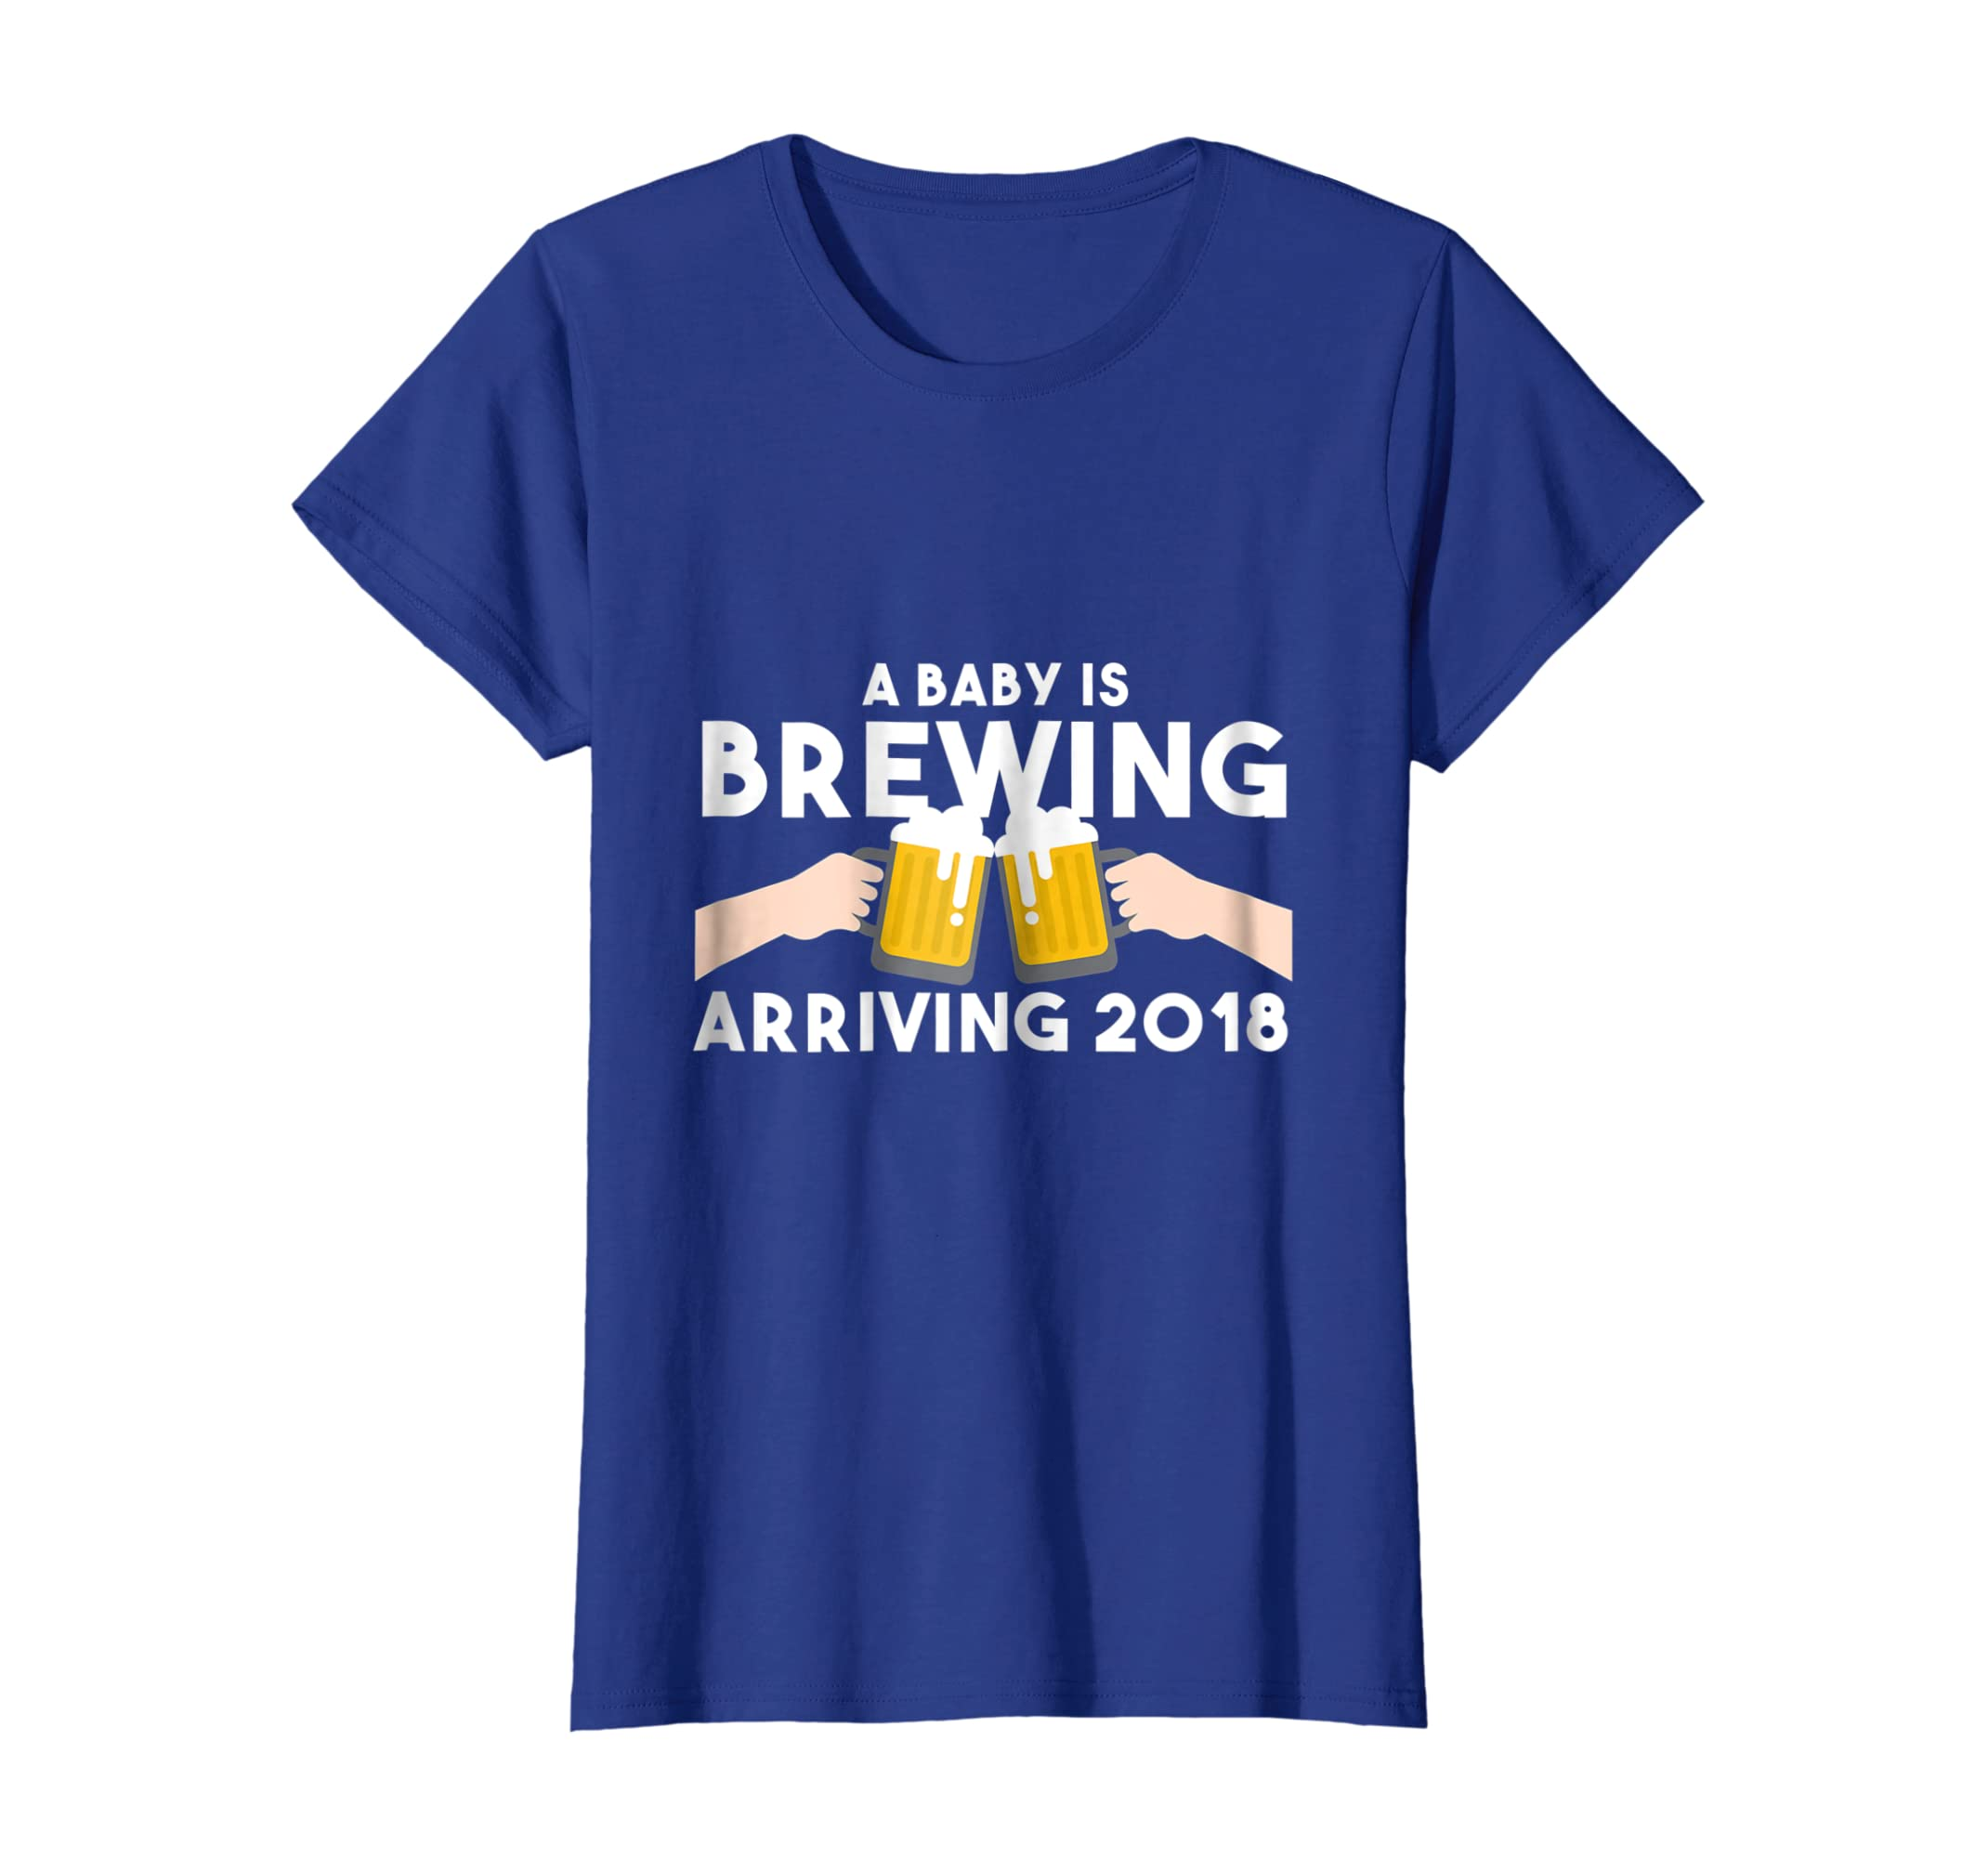 2af4c001de Amazon.com: Baby Is Brewing Shirt Funny Beer Shirts For Men Adult Humor:  Clothing